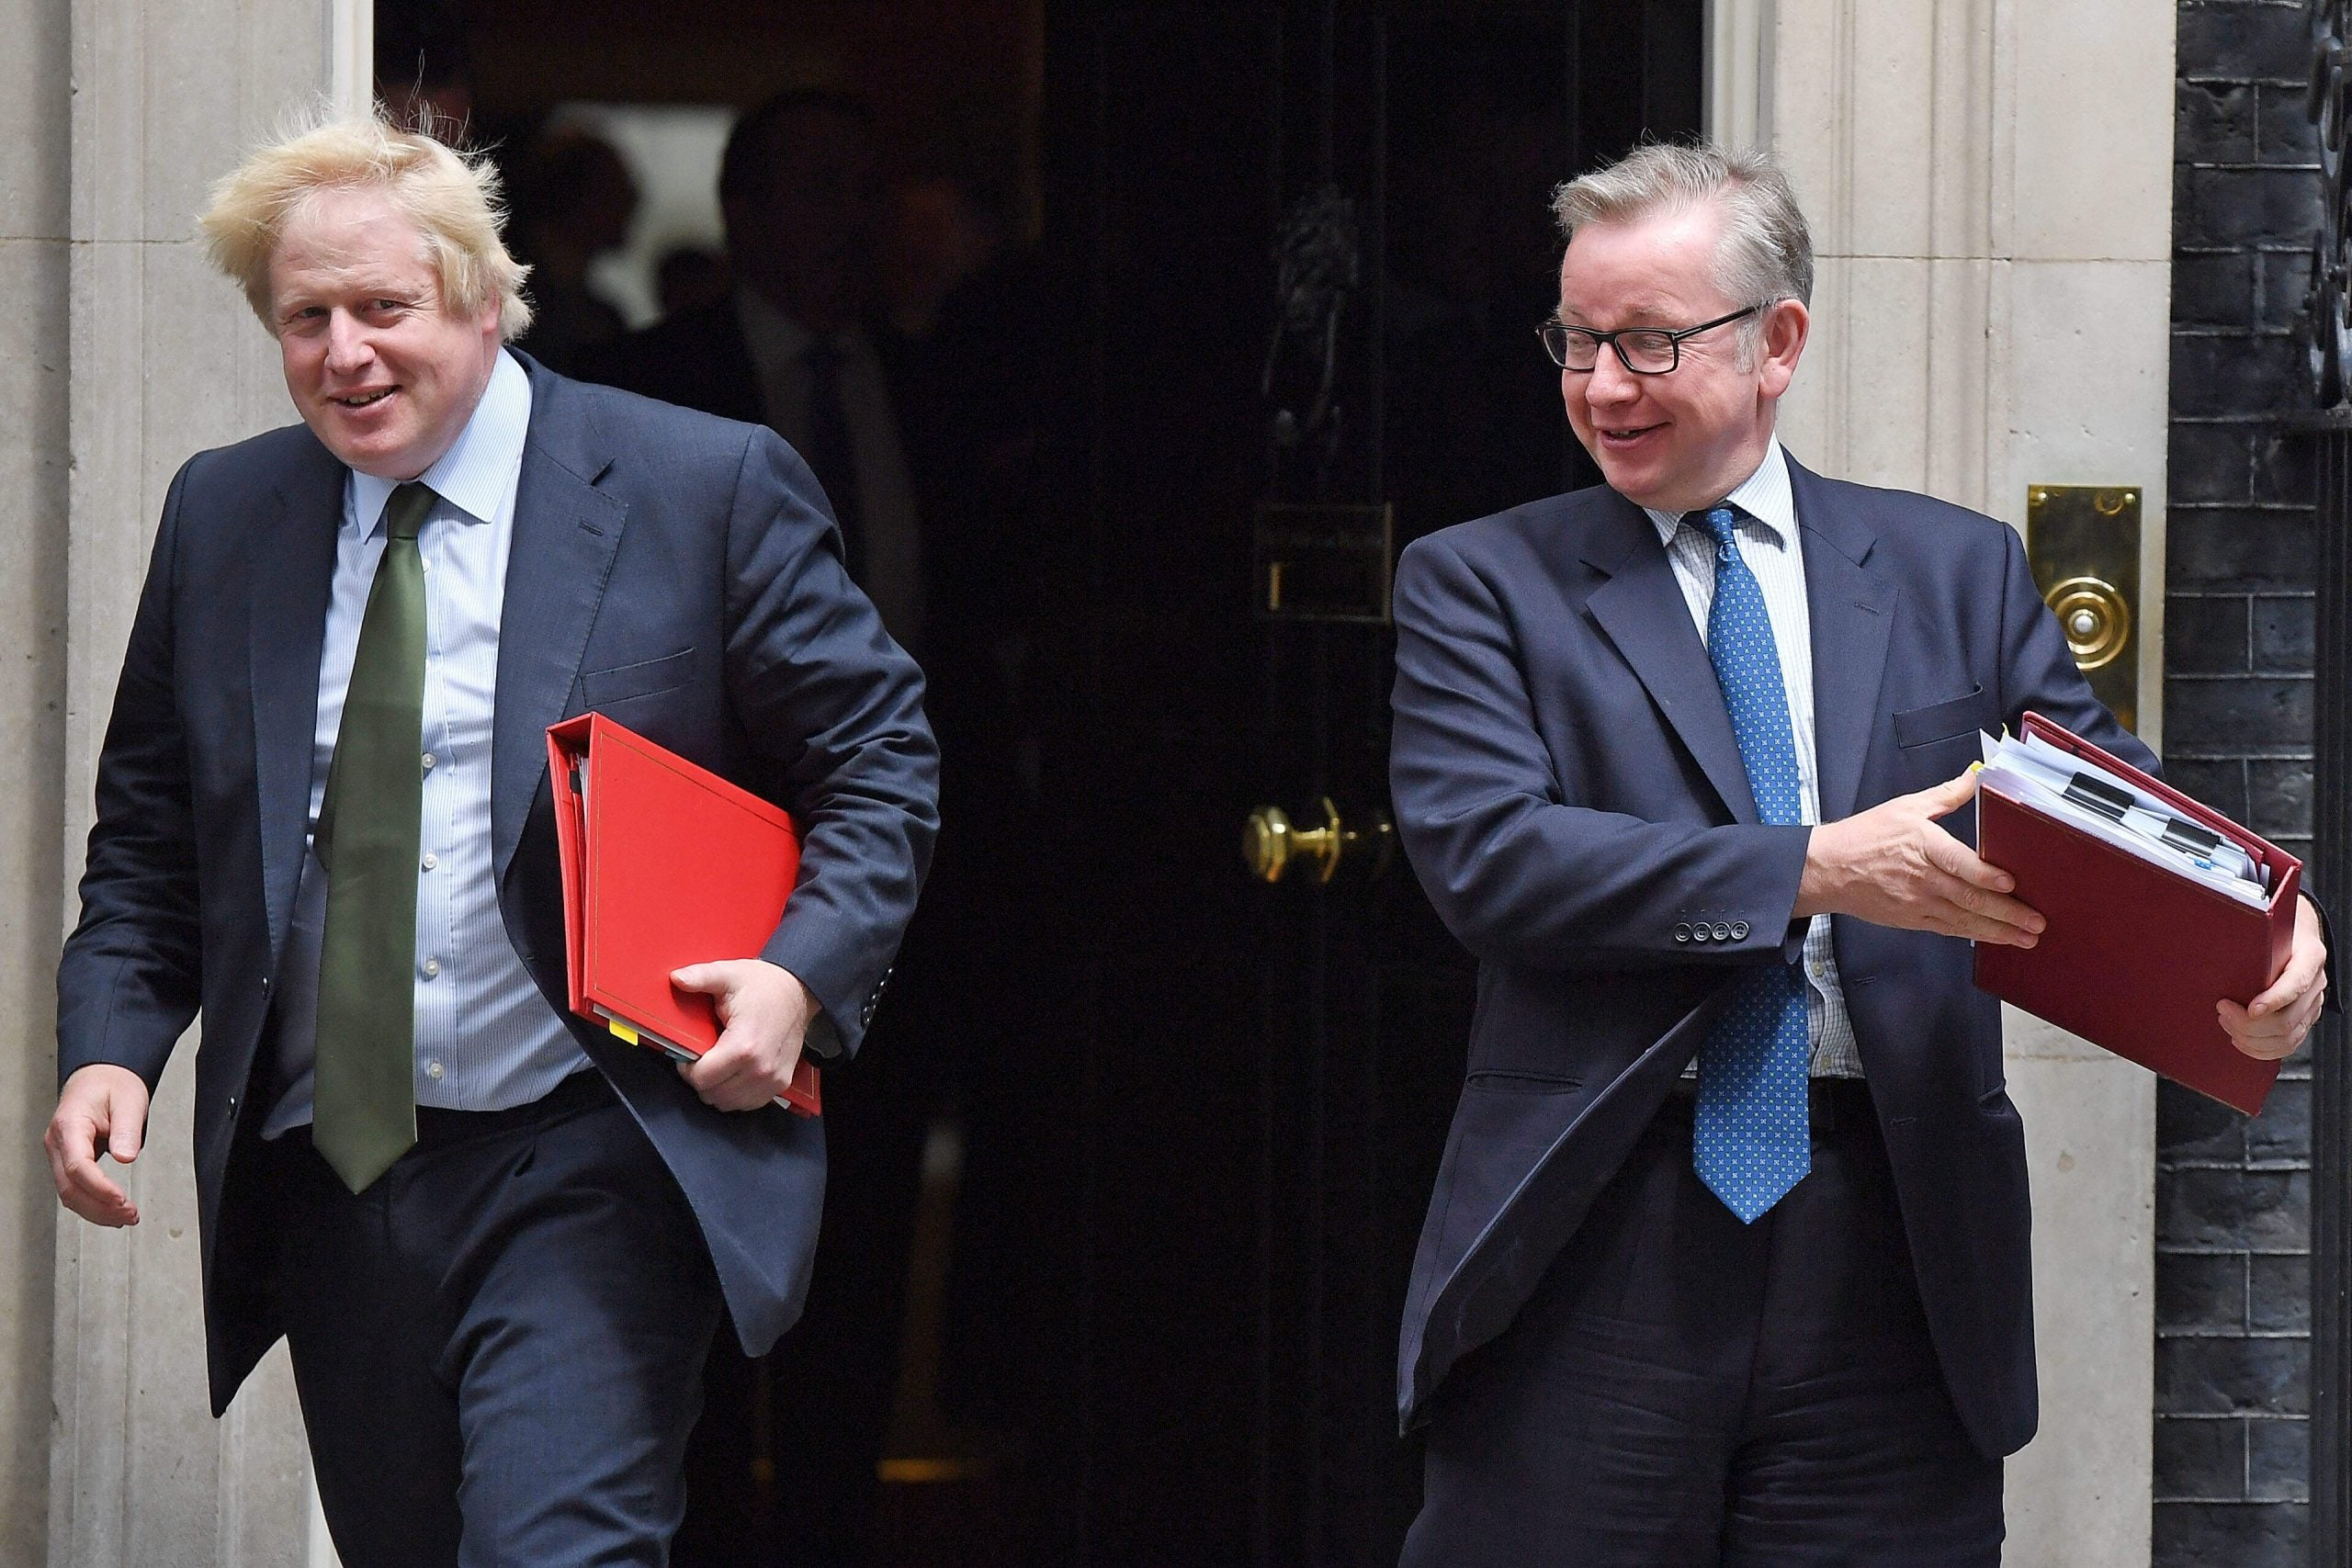 Commons Confidential: Is Brexit's latest victim the unstable bromance of Boris Johnson and Michael Gove?